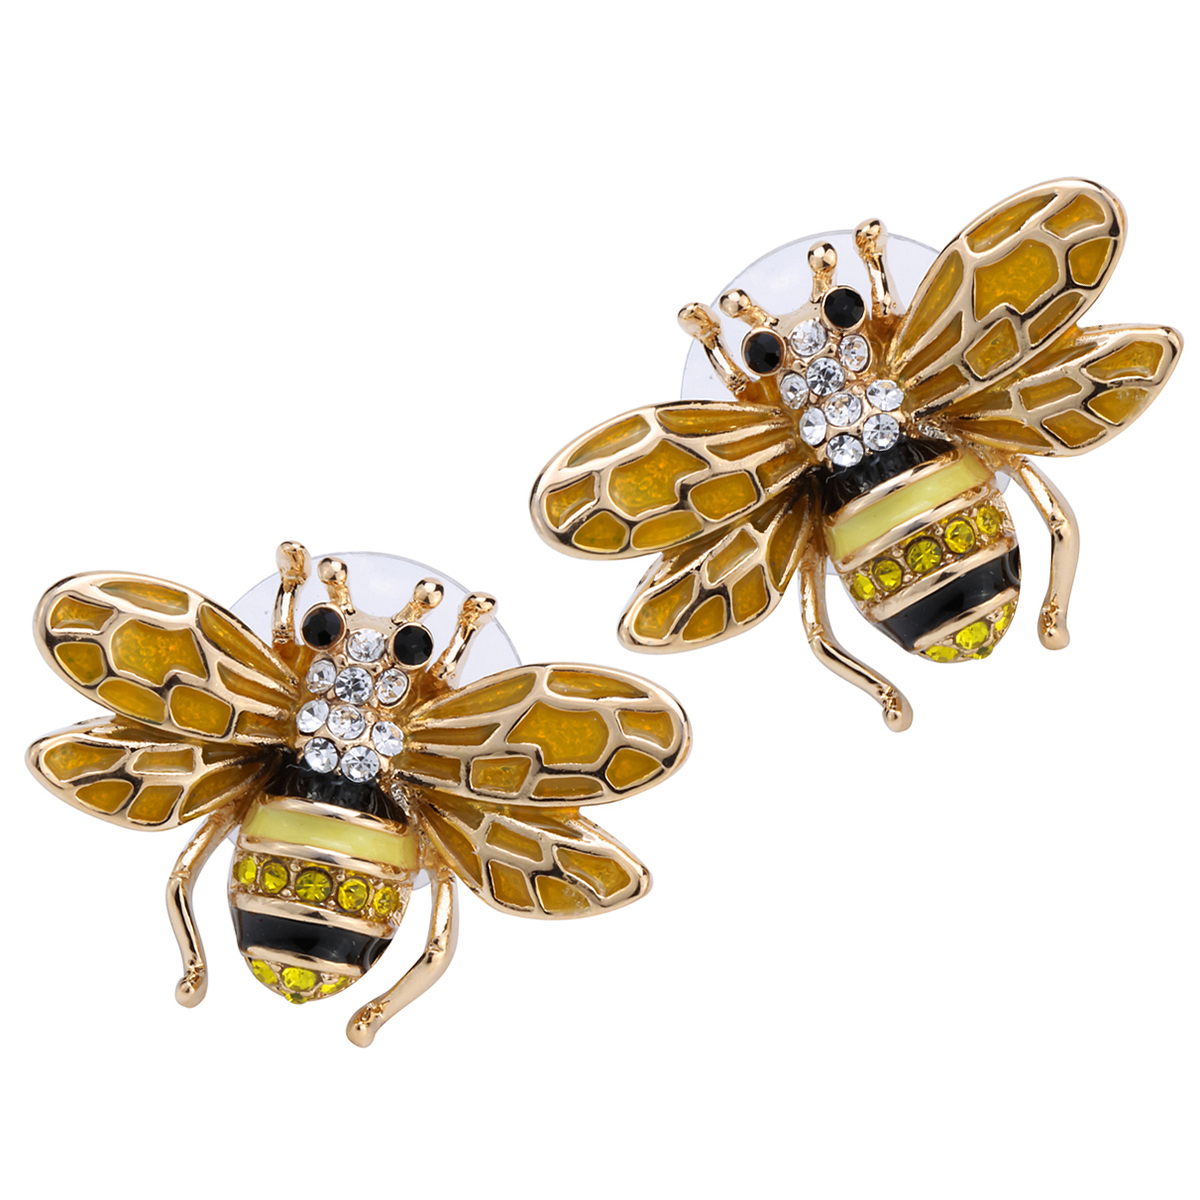 Considerate Yacq Honey Bee Stud Earrings Austrian Crystal Enamel Gold Color Fashion Jewelry Birthday Gifts Women Mom Girls Dropshipping Bee7 Orders Are Welcome.